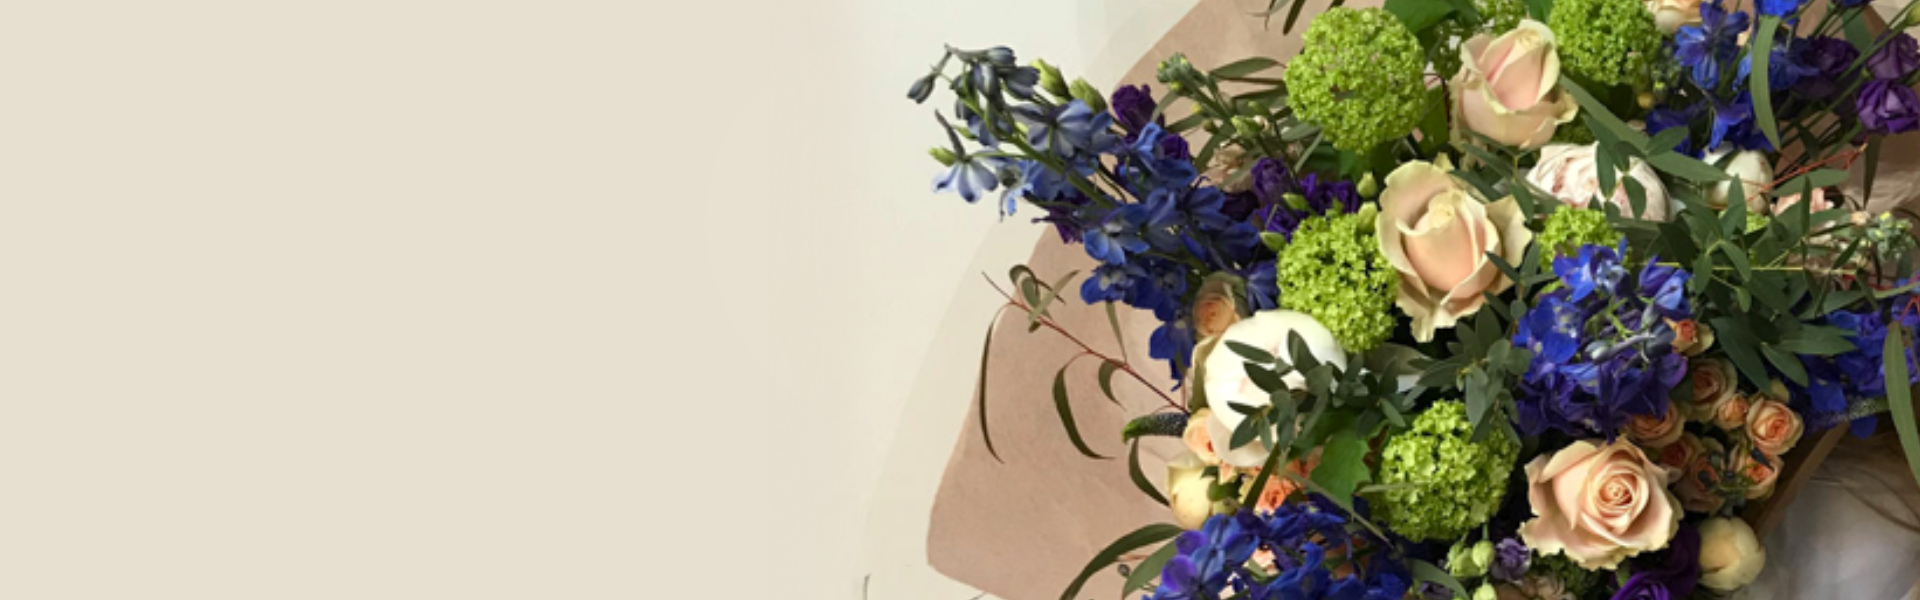 Cley_Banner